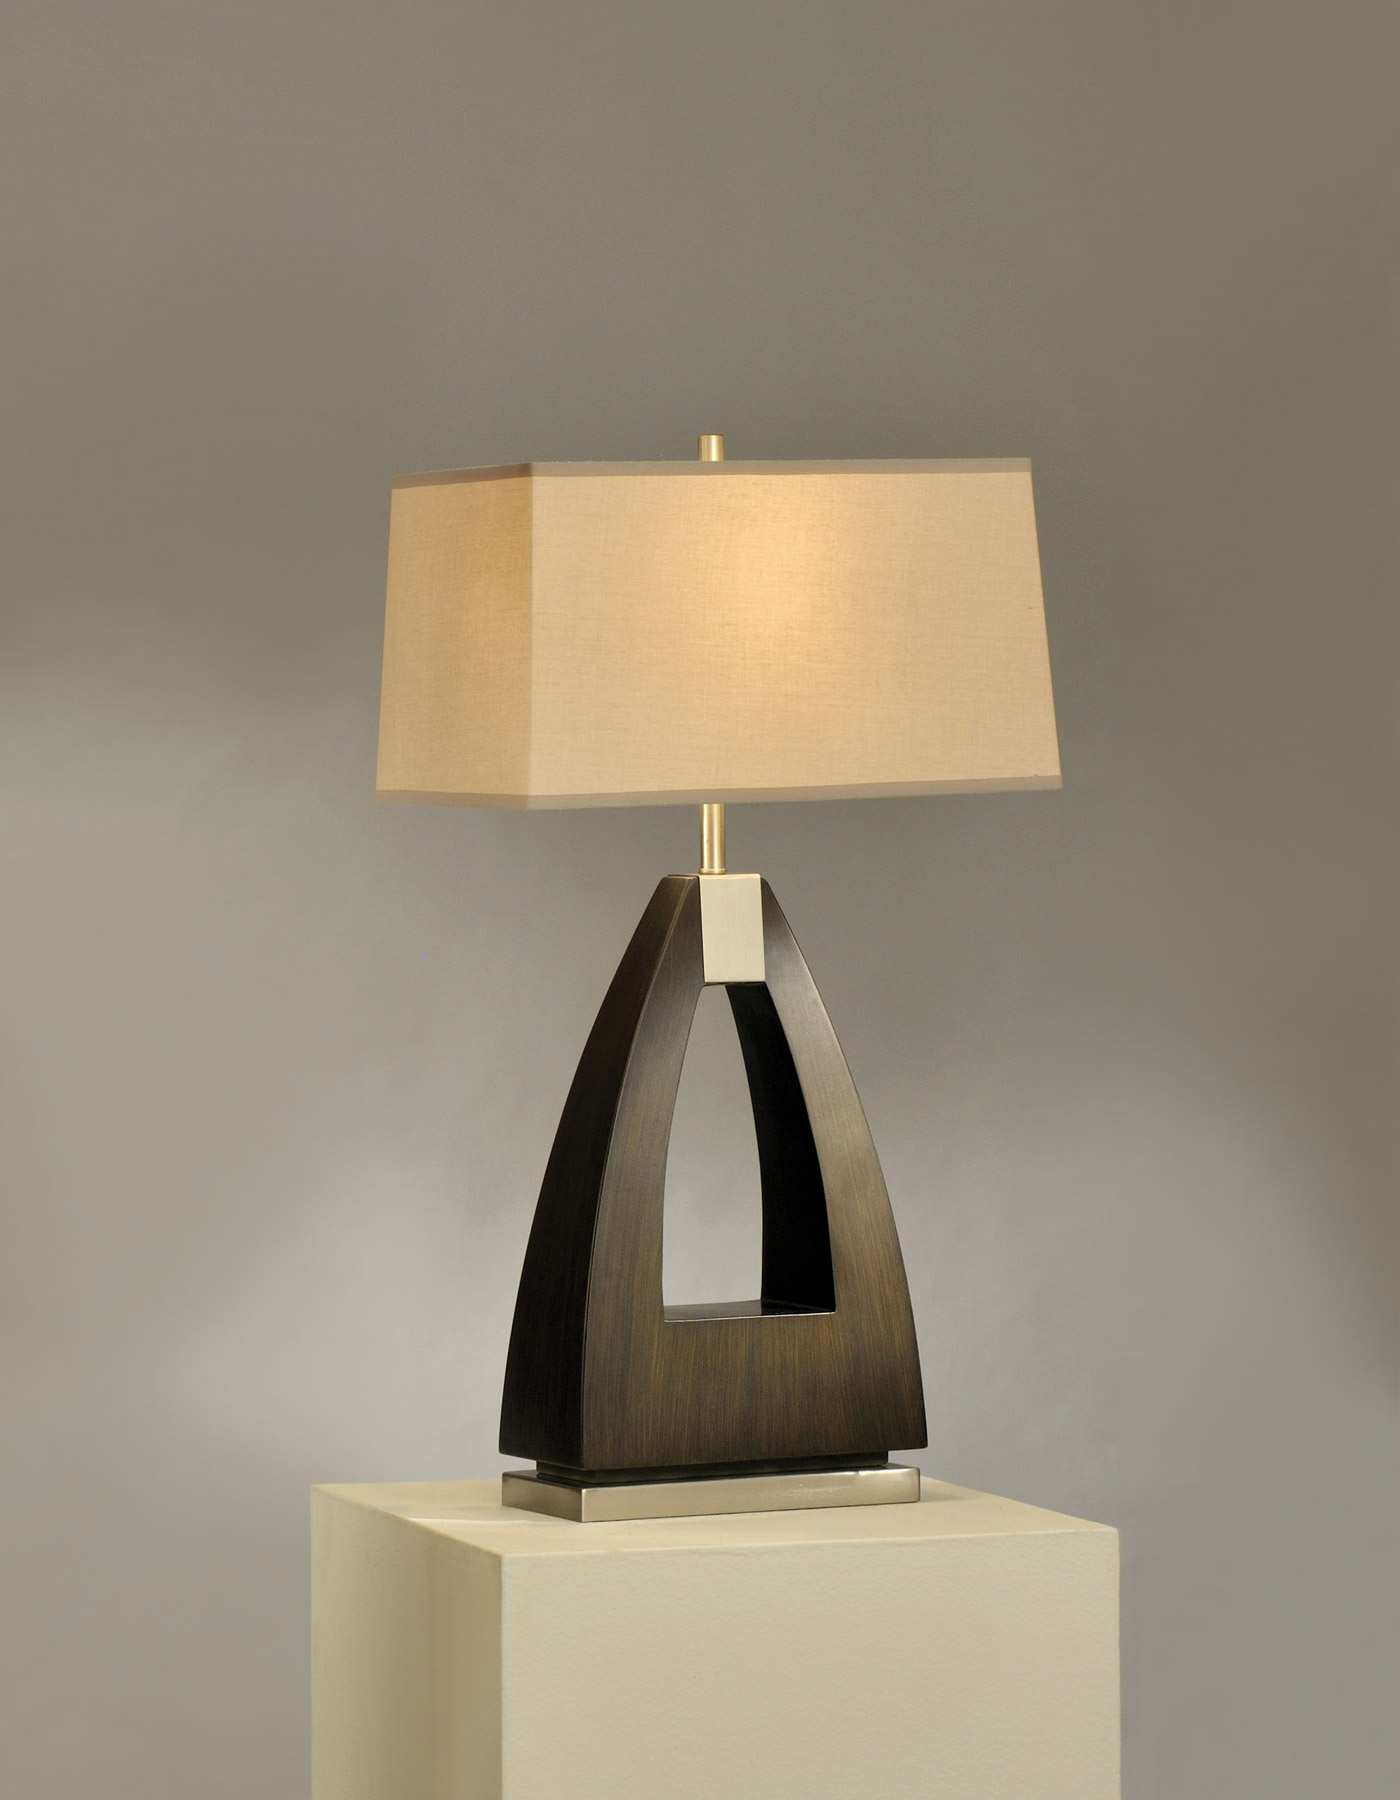 Lighting 10392 trina table lamp nova lighting 10392 trina table lamp geotapseo Images